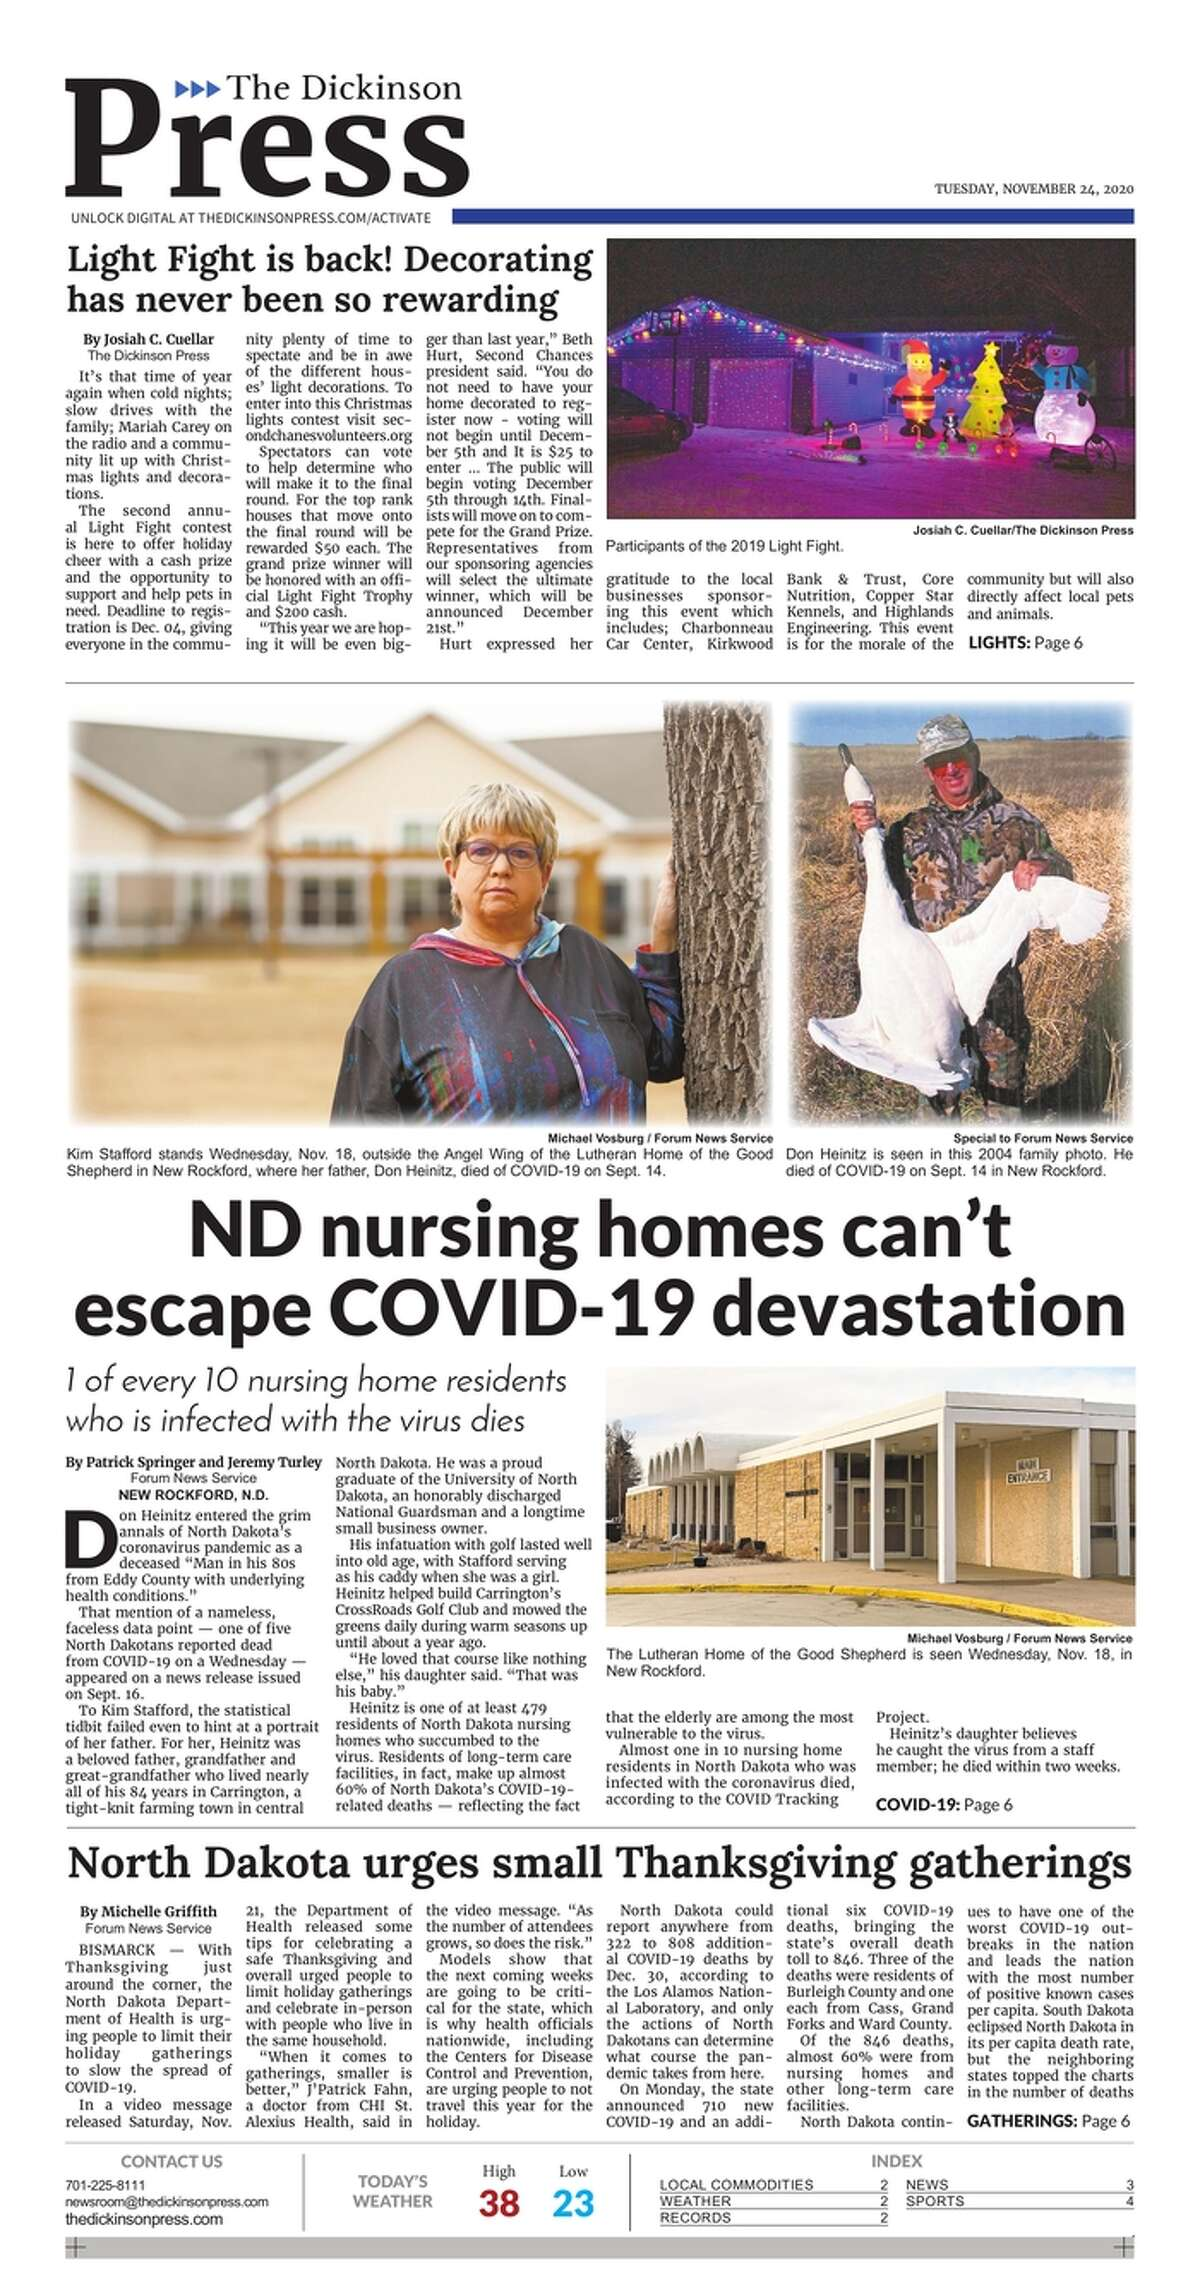 The front page of the Dickinson Press, a North Dakota newspaper, on Nov. 24, 2020.